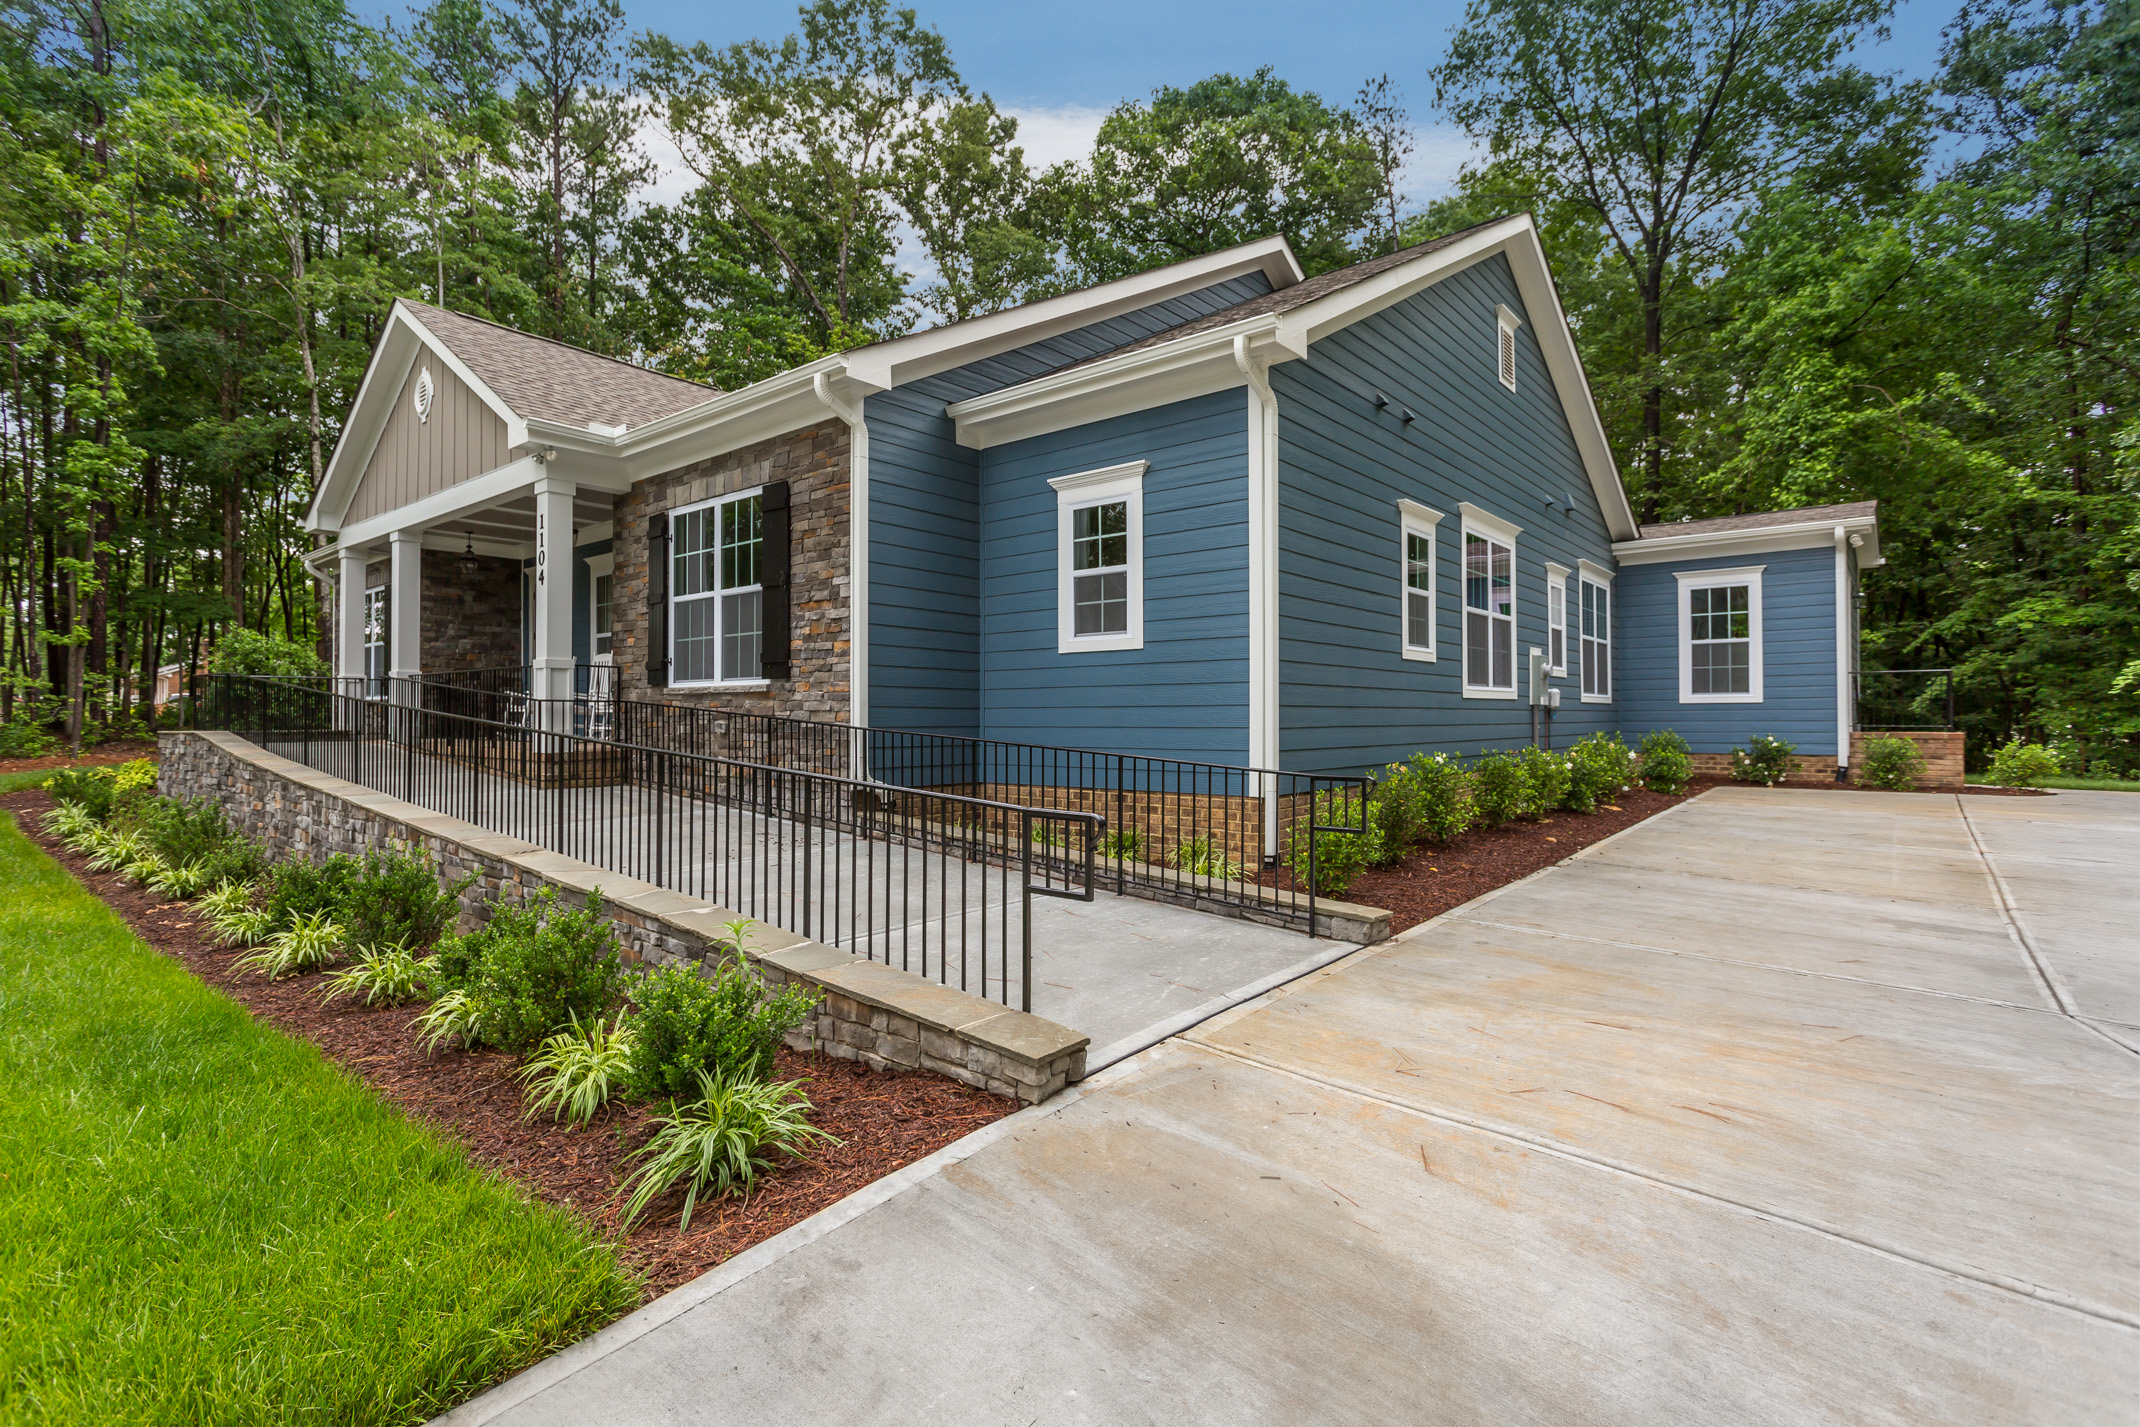 Avallaire on Maynard - Assisted Living Home